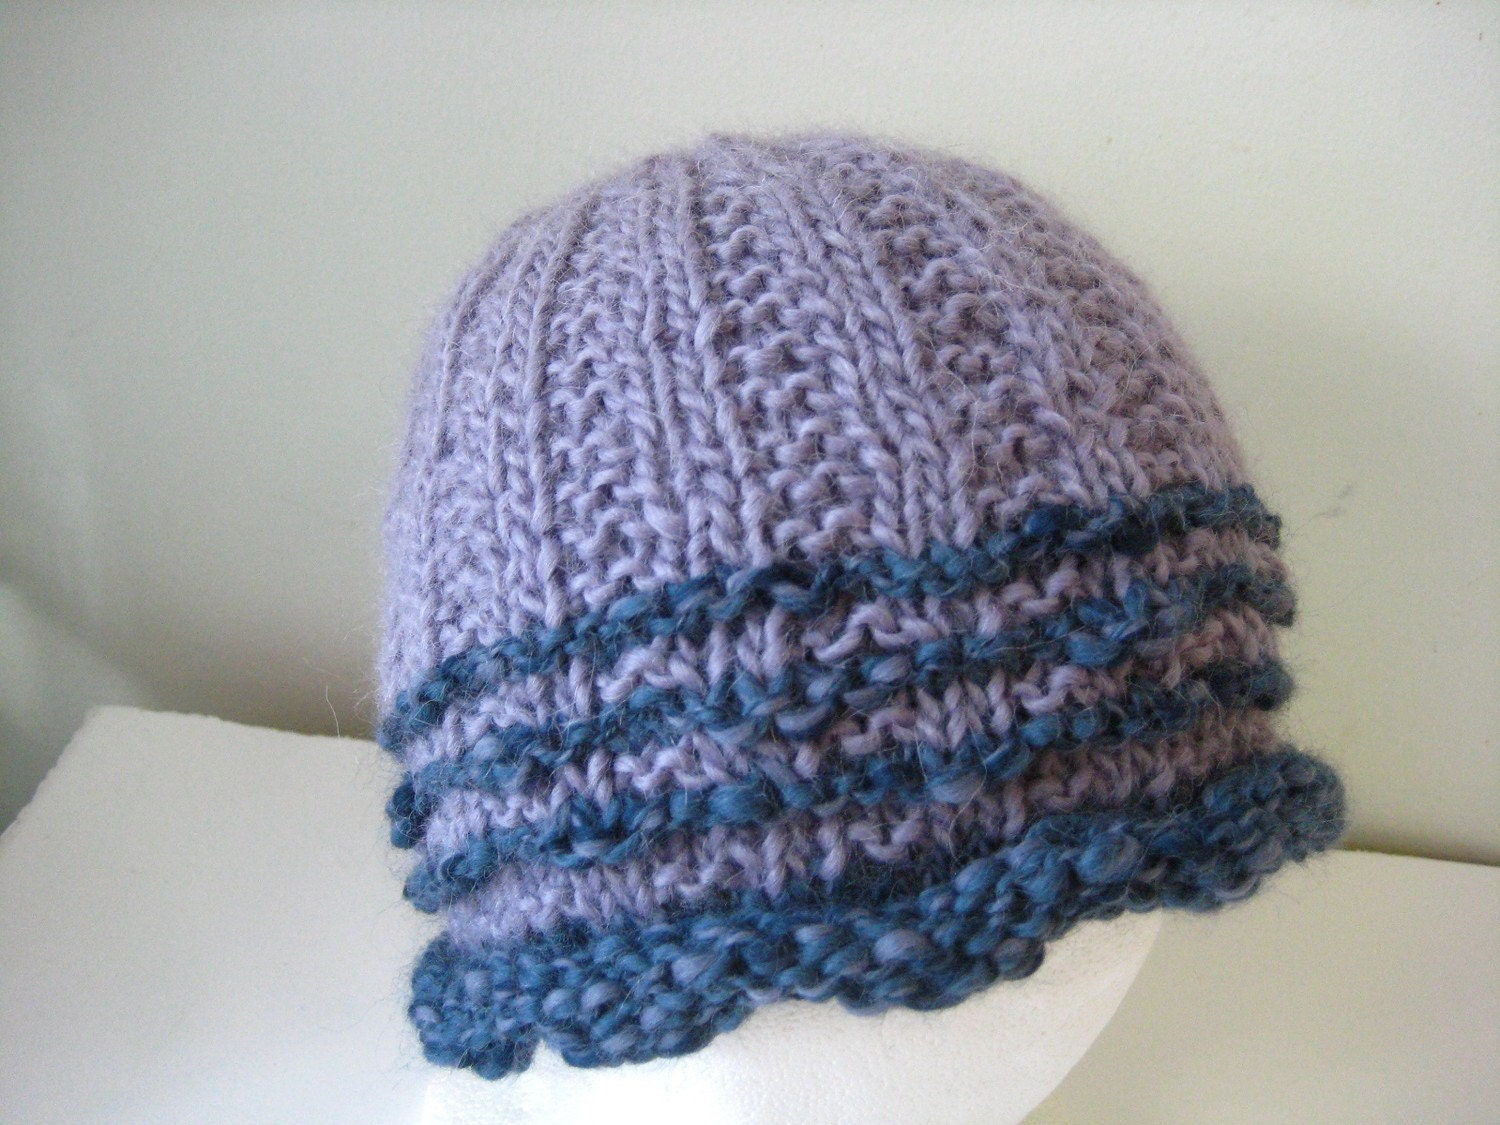 lavender and teal blue hat of llama wool and alpaca - beaconknits